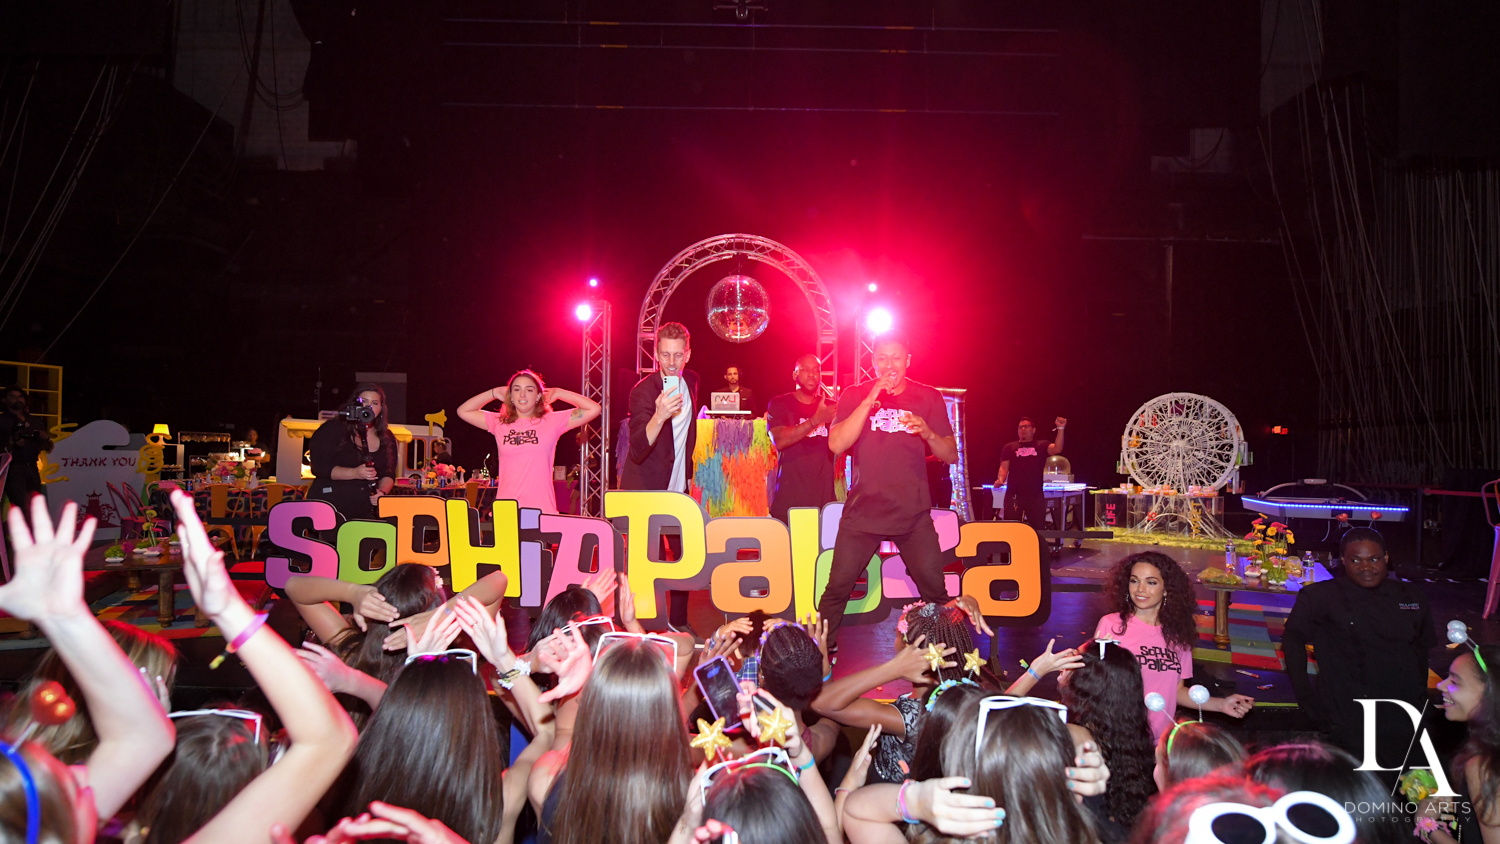 concert at Music Festival Bat Mitzvah at The Fillmore Miami Beach by Domino Arts Photography